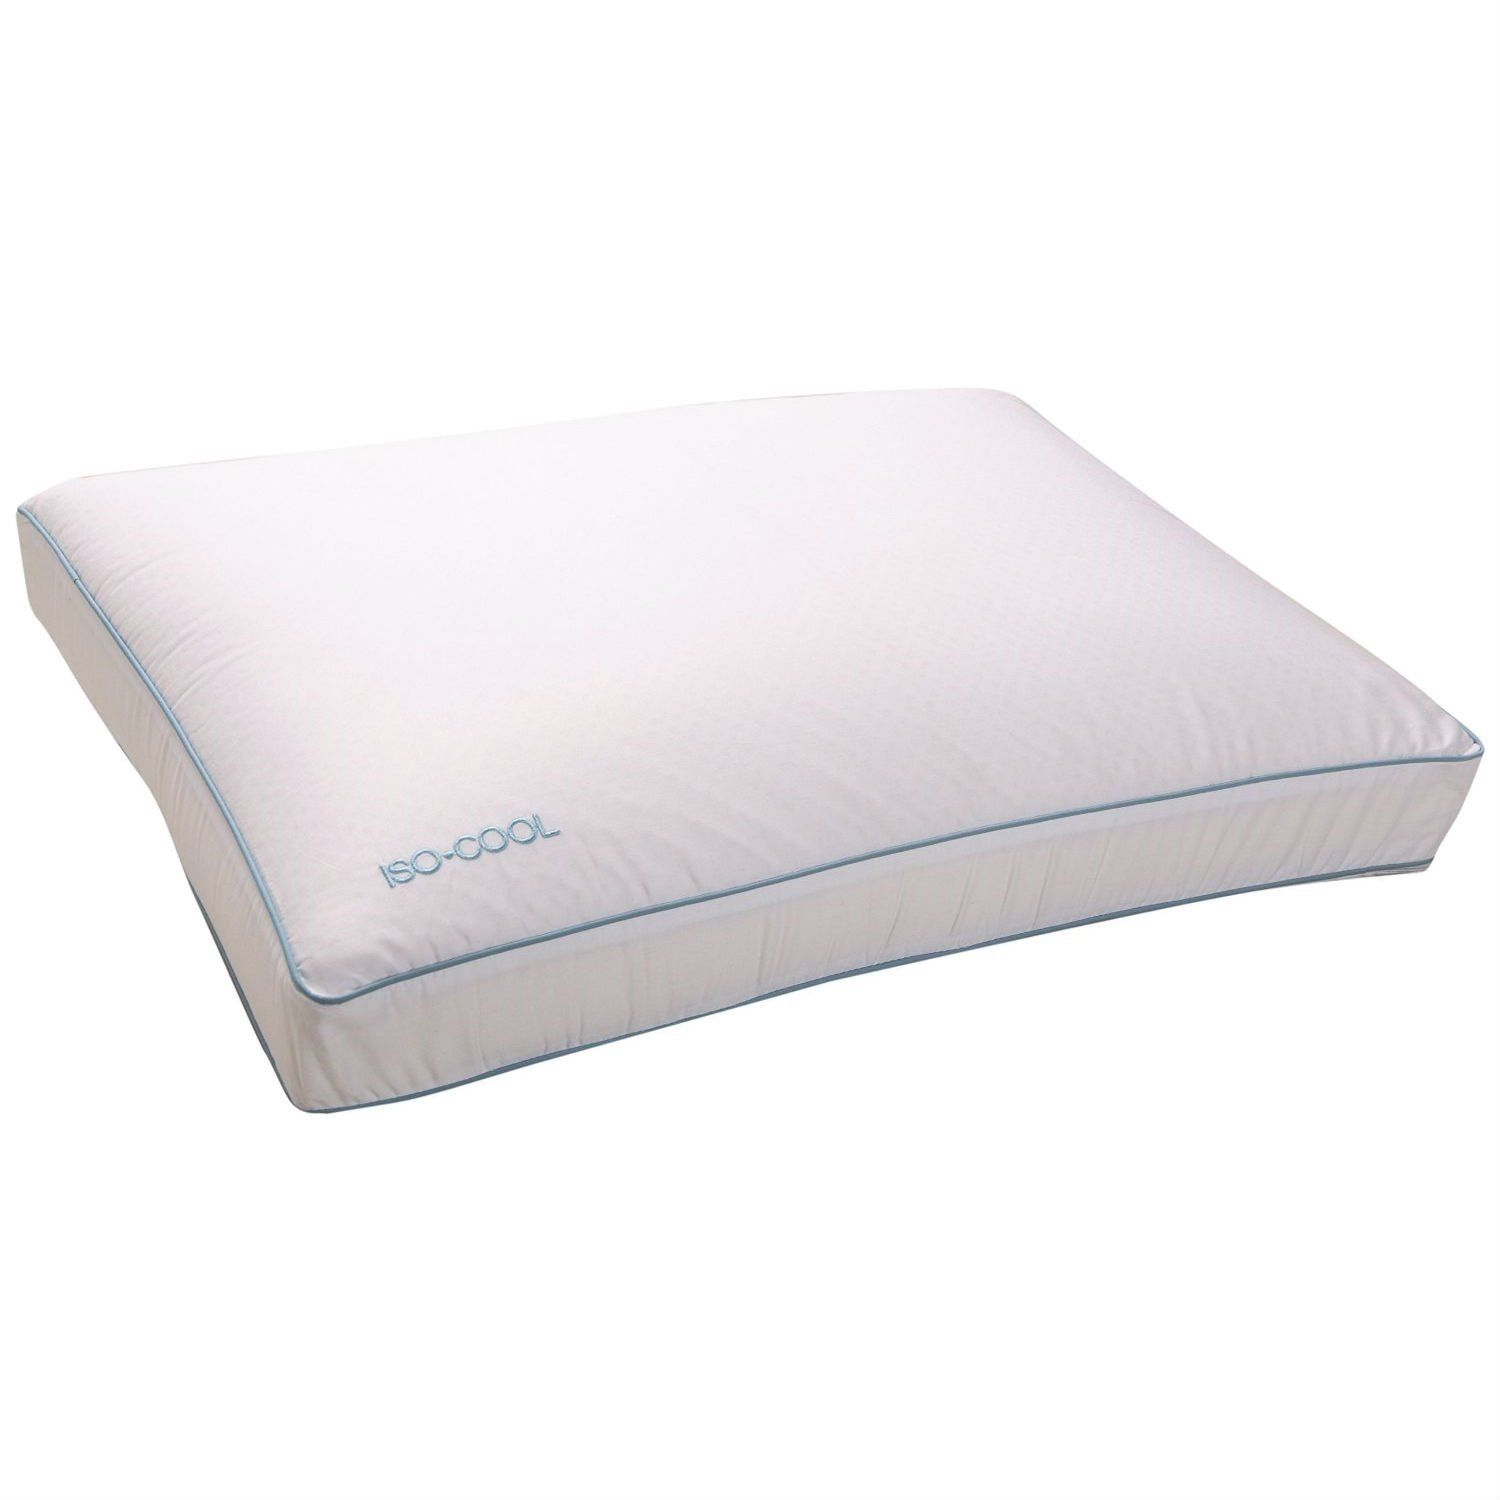 Side sleeper memory foam pillow with cotton cover standard